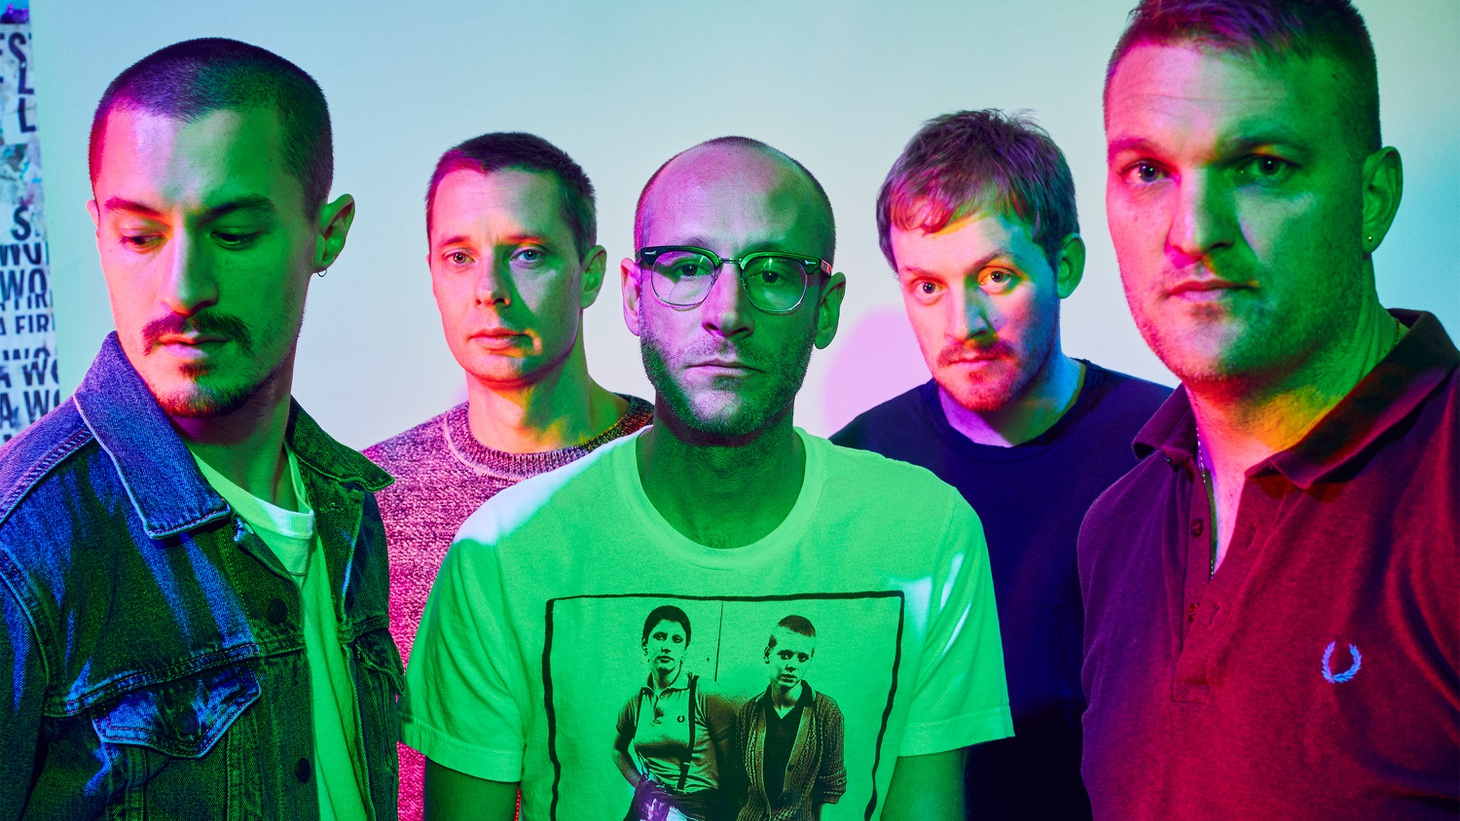 Cold War Kids' sixth album, LA Divine, pays tribute to Los Angeles and all its strange glory.